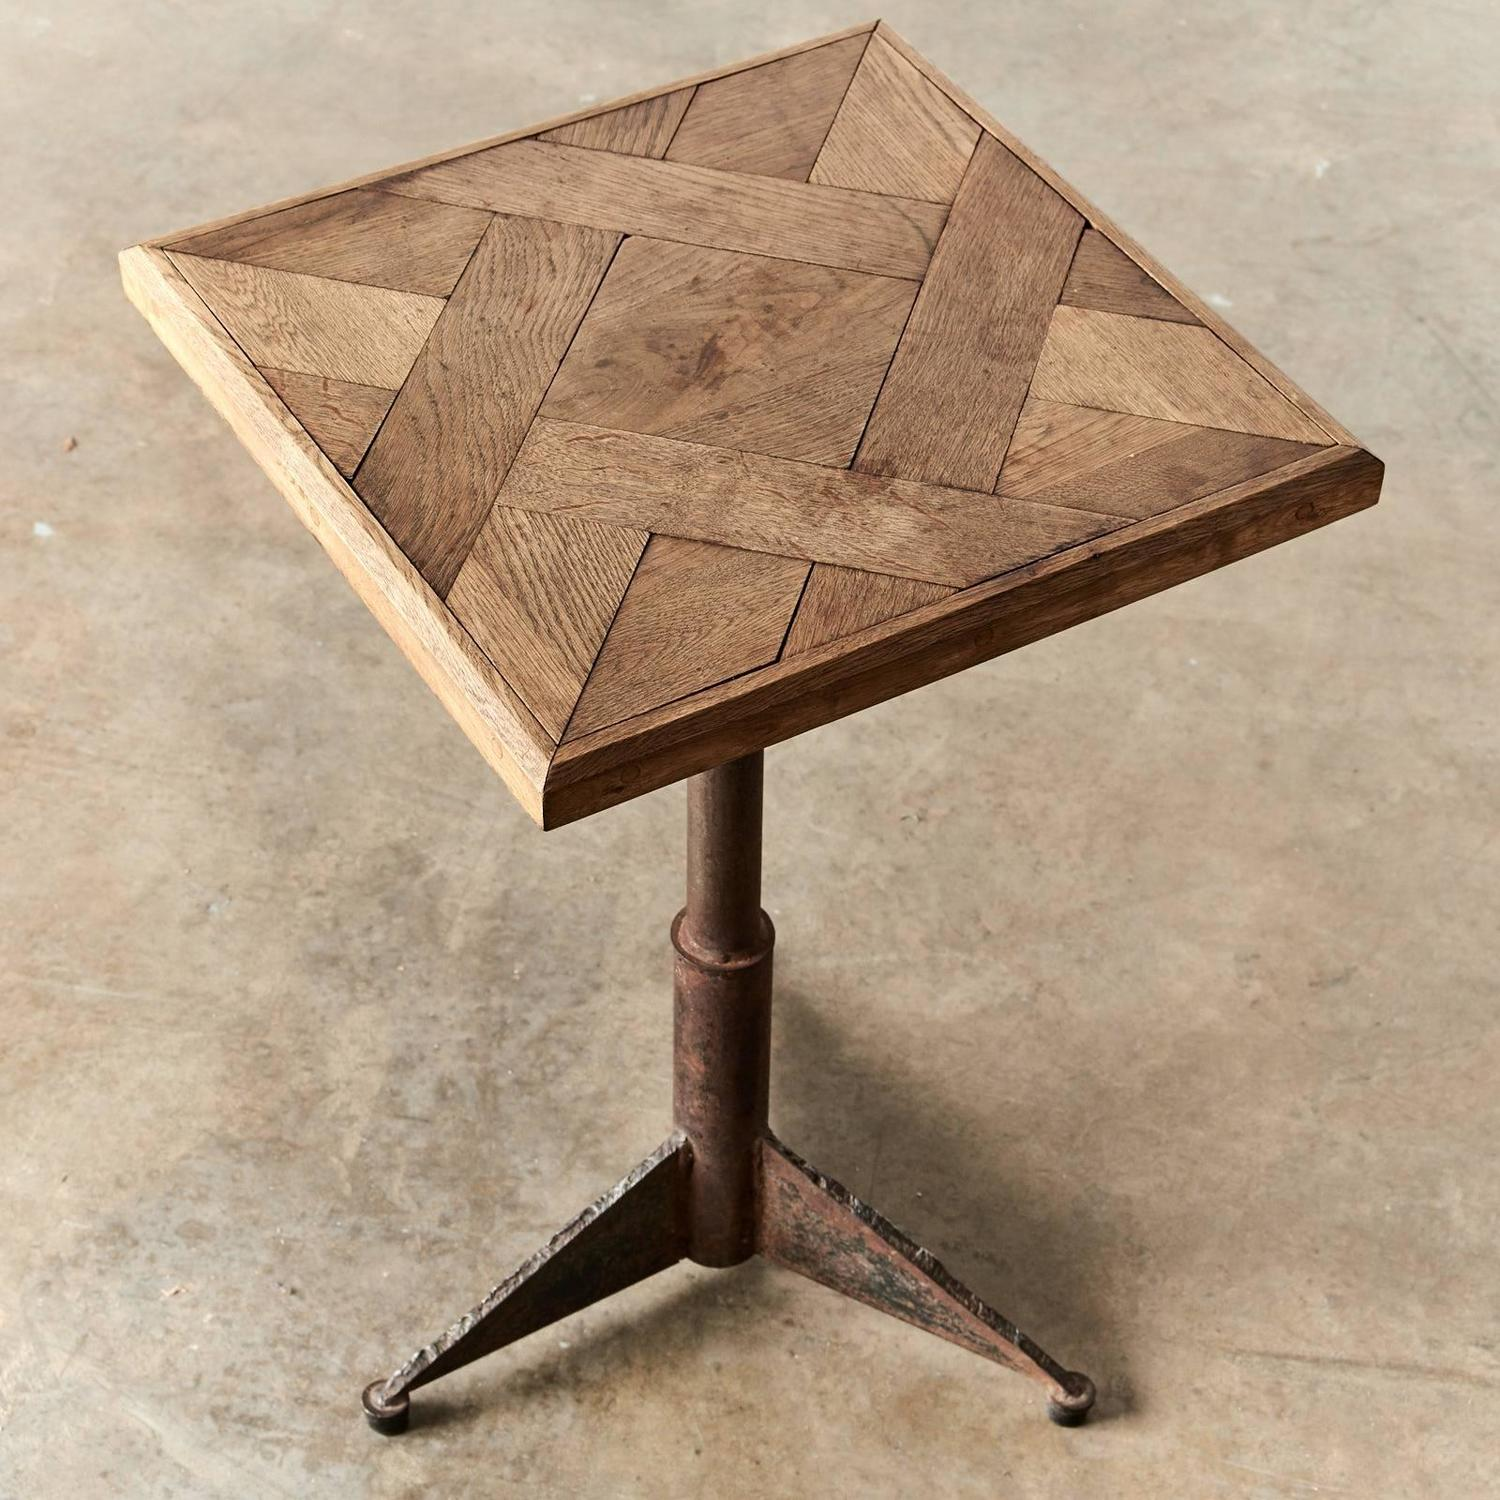 Versailles Square Coffee Table: Oak Parquet De Versailles Topped Table For Sale At 1stdibs